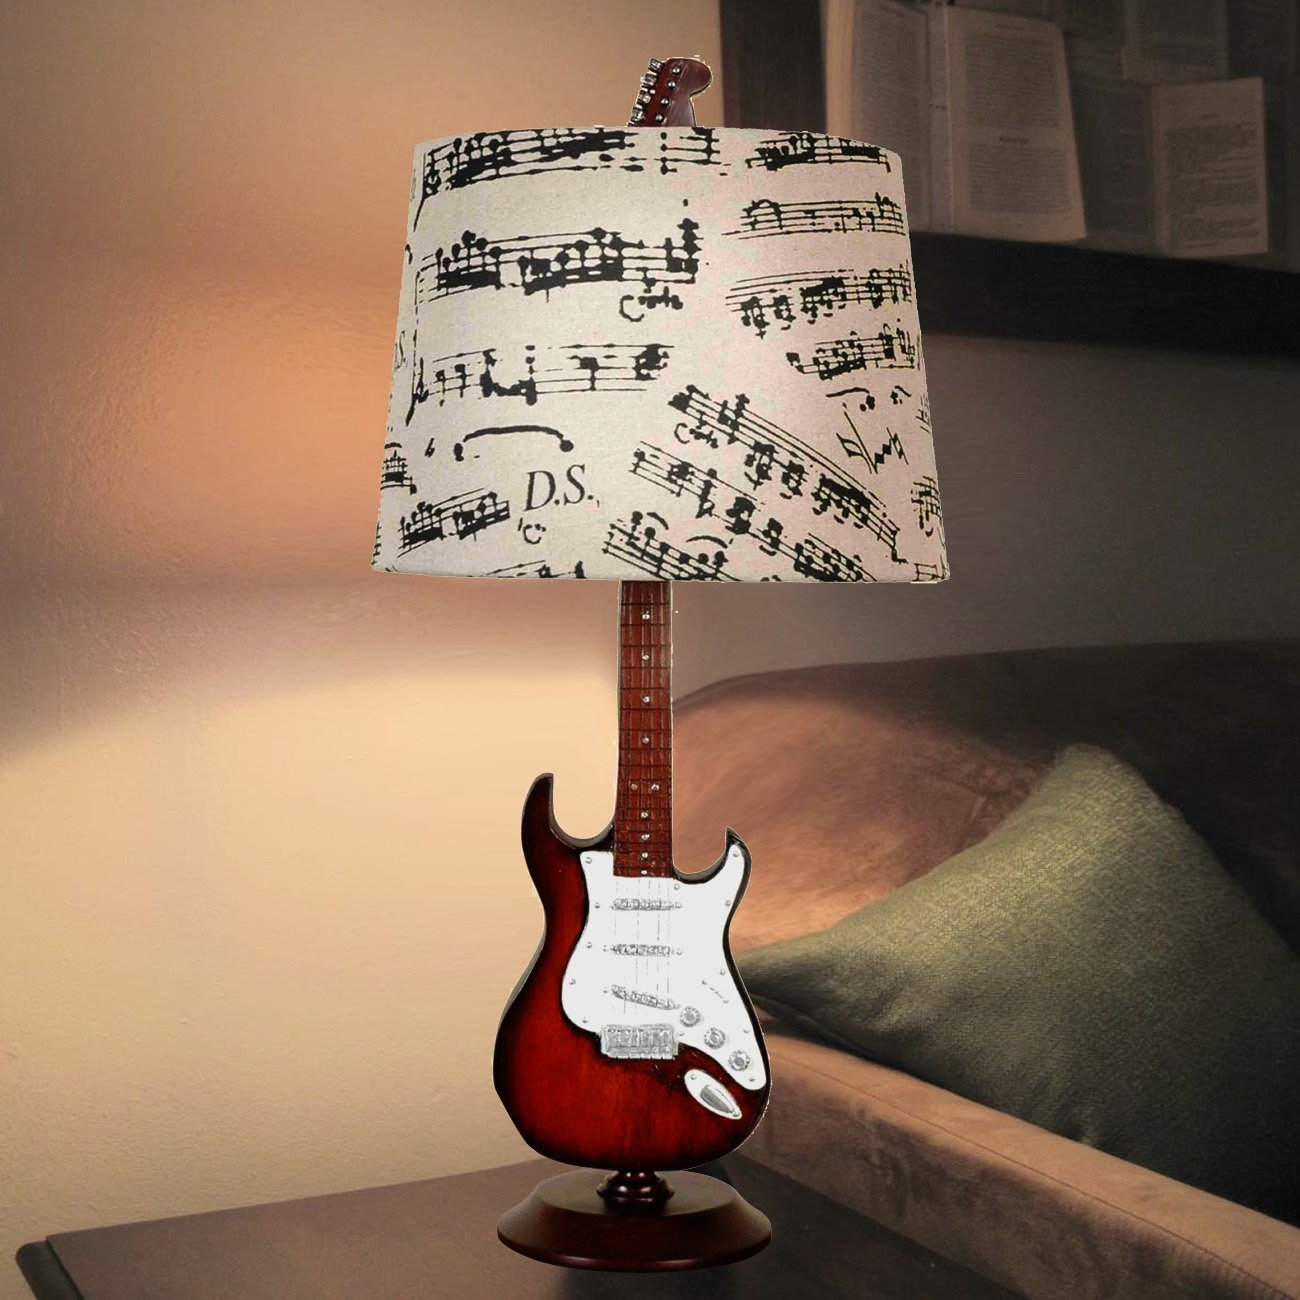 Amazon creative motion guitar desk lamp 245 inch home amazon creative motion guitar desk lamp 245 inch home kitchen aloadofball Image collections